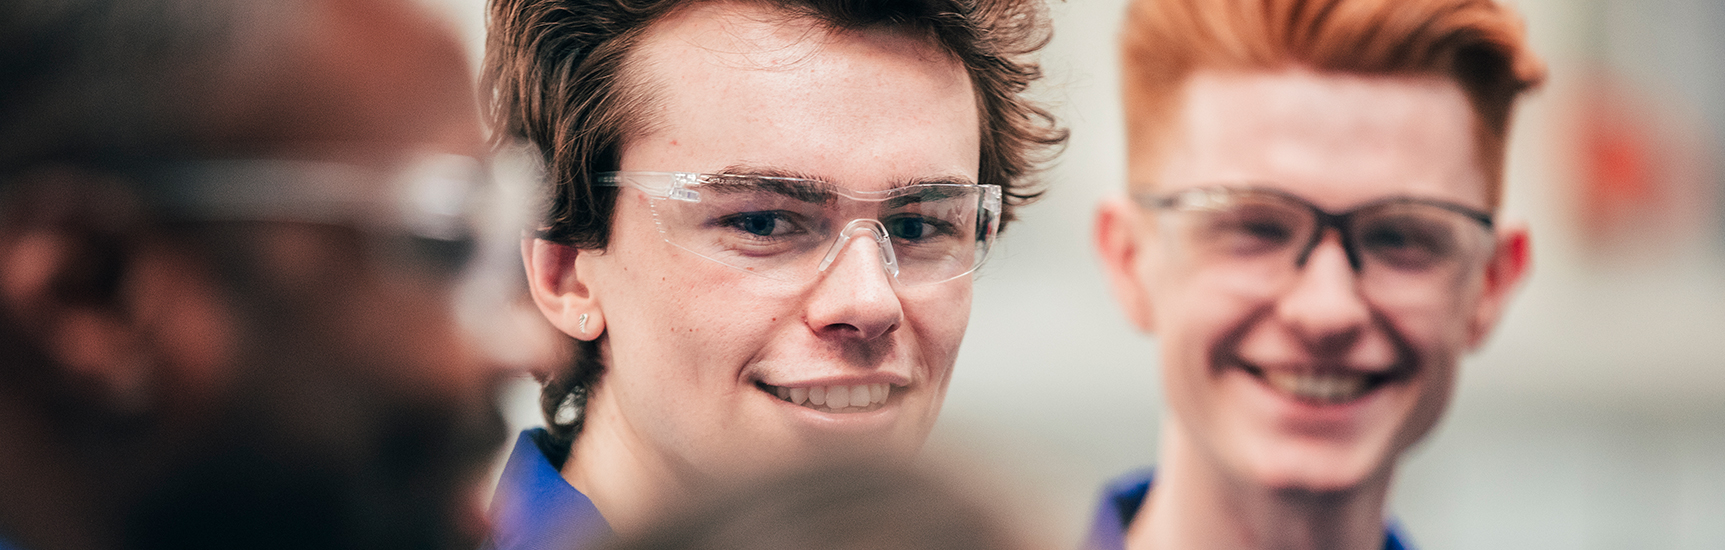 Happy apprentices in safety glasses